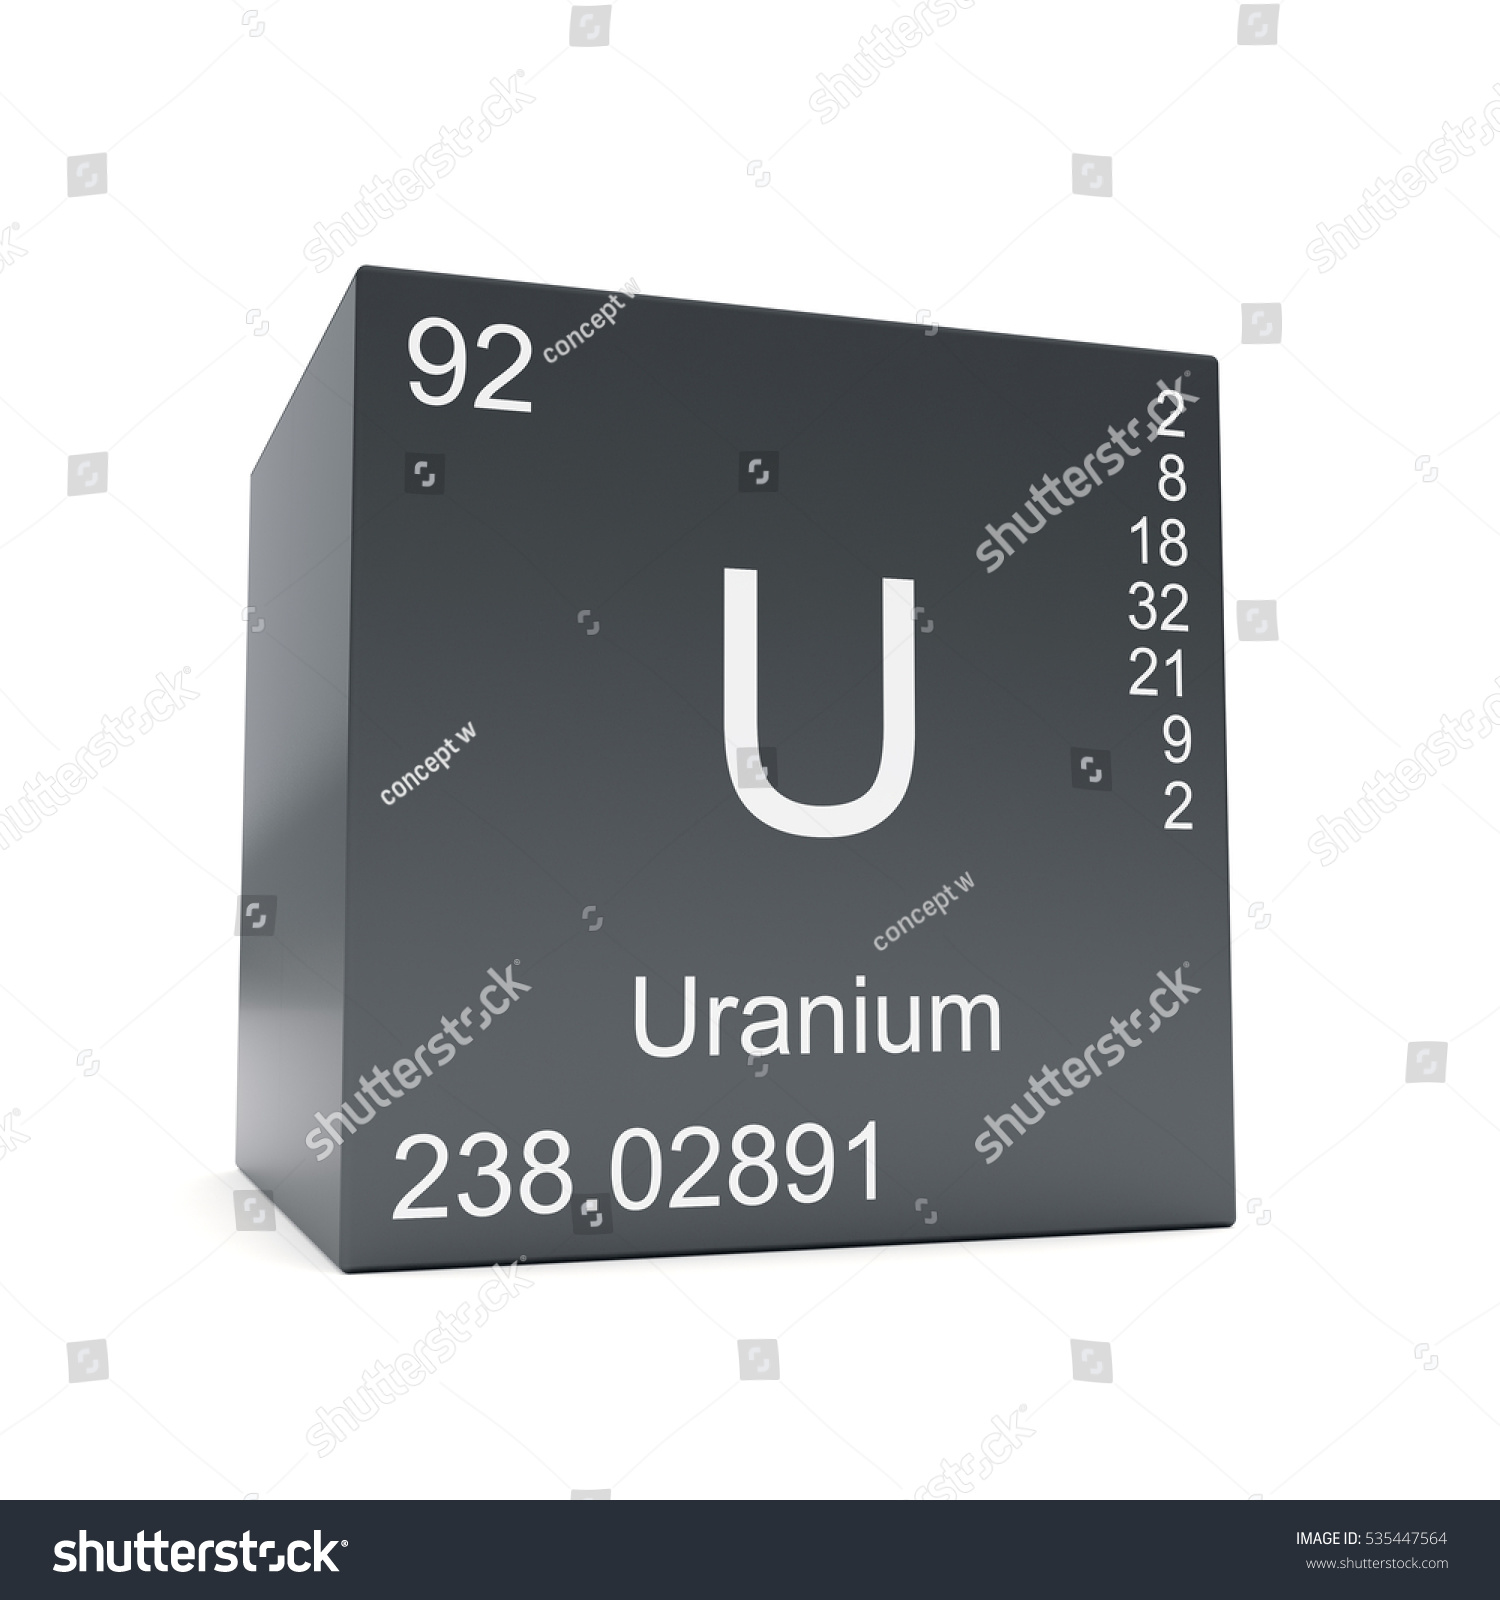 Uranium chemical element symbol periodic table stock illustration uranium chemical element symbol from the periodic table displayed on black cube 3d render gamestrikefo Image collections